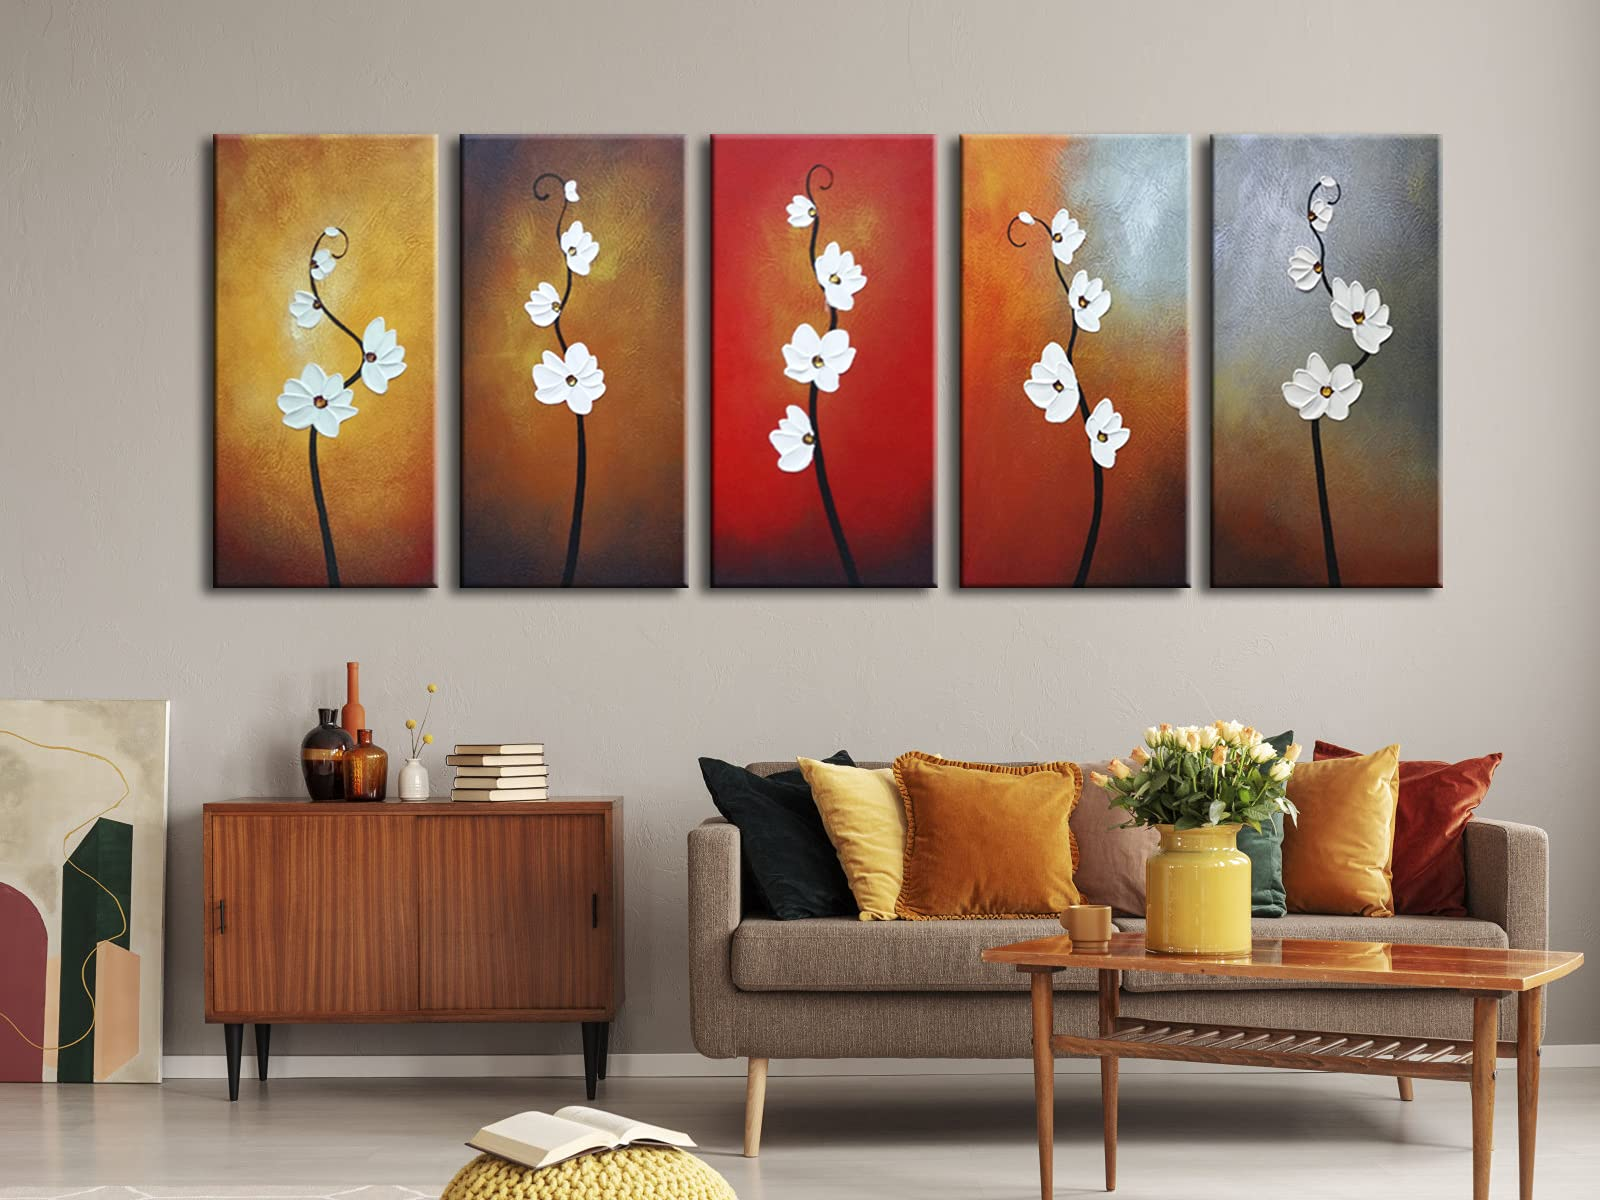 Wieco Art Large Modern Colorful Flowers Artwork 5 Piece 100% Hand Painted Framed Contemporary Abstract Floral Oil Painting on Canvas Wall Art Ready to Hang for Living Room Bedroom Home Decorations